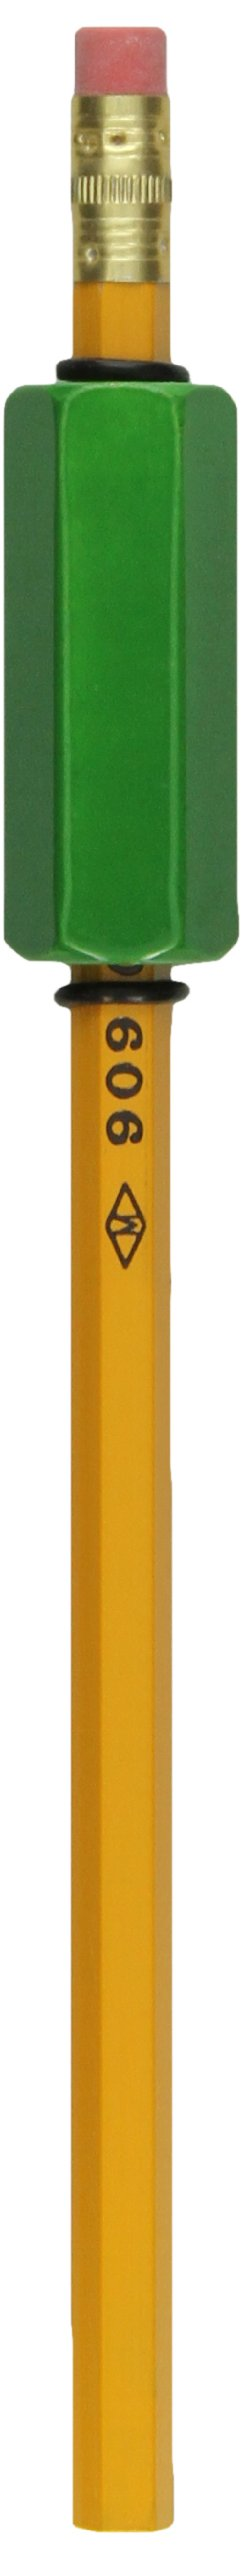 Abilitations 1359106 Weighted Pencil, Set of 39, 1-(Pack)